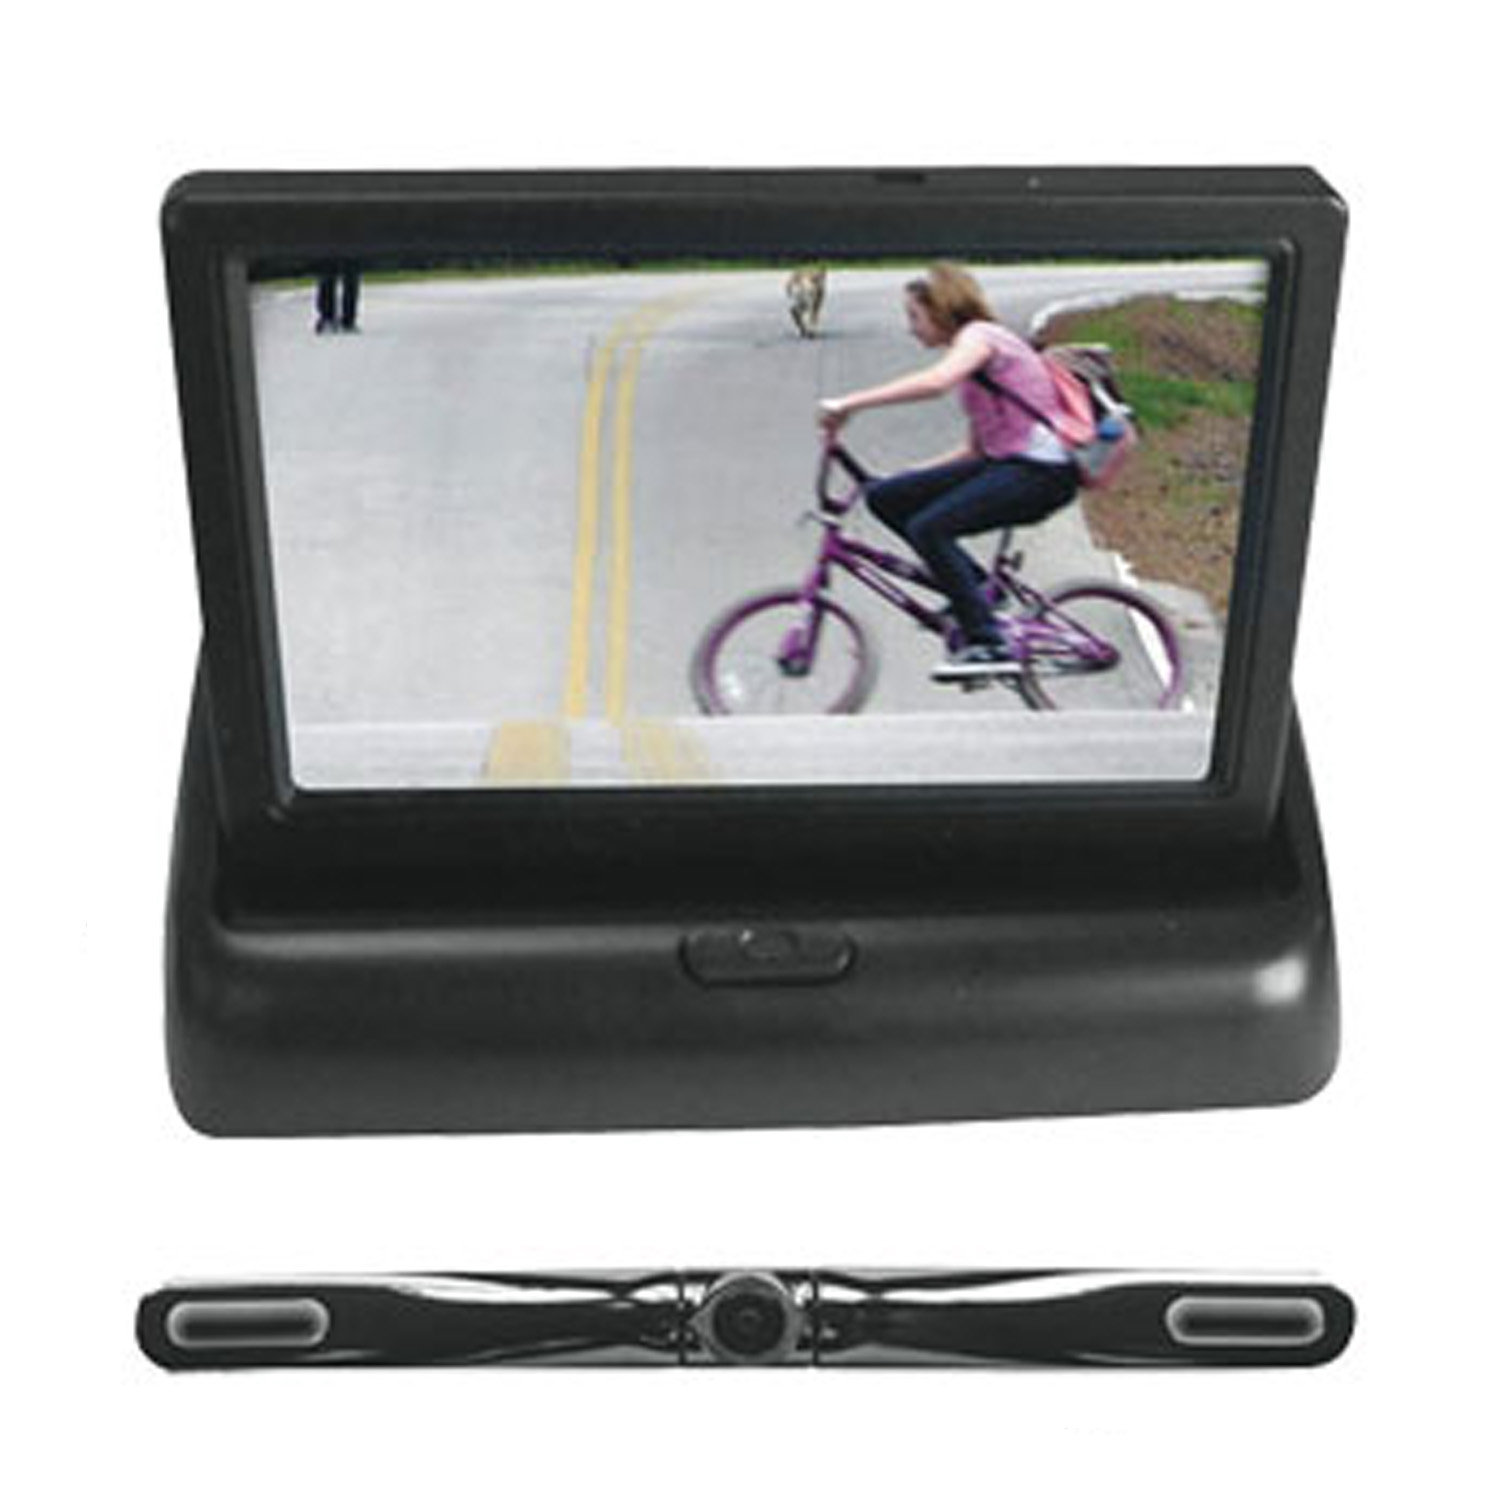 Pyle 4.3 Inch Pop Up Monitor With Bar Camera